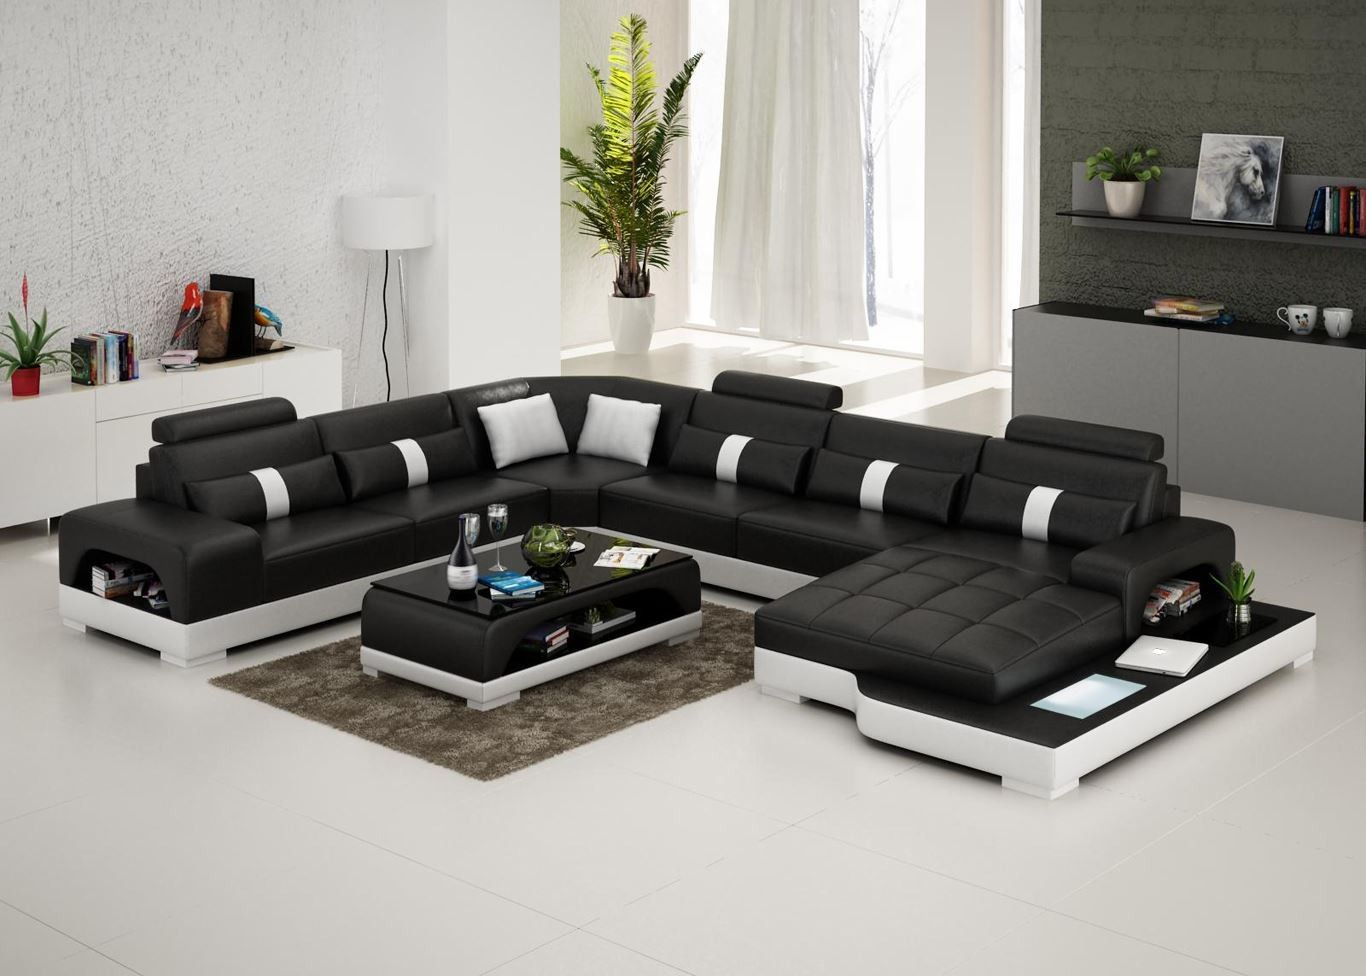 fancy sofa sets bensen connie sectional leather living room furniture from opulent items ihso01253